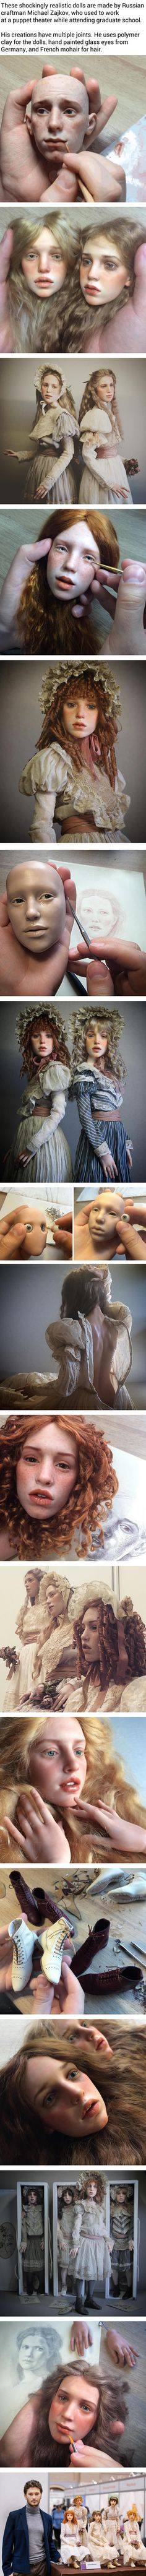 These Stunningly Realistic Doll Faces Will Make Your Skin Crawl (By Michael Zajkov)